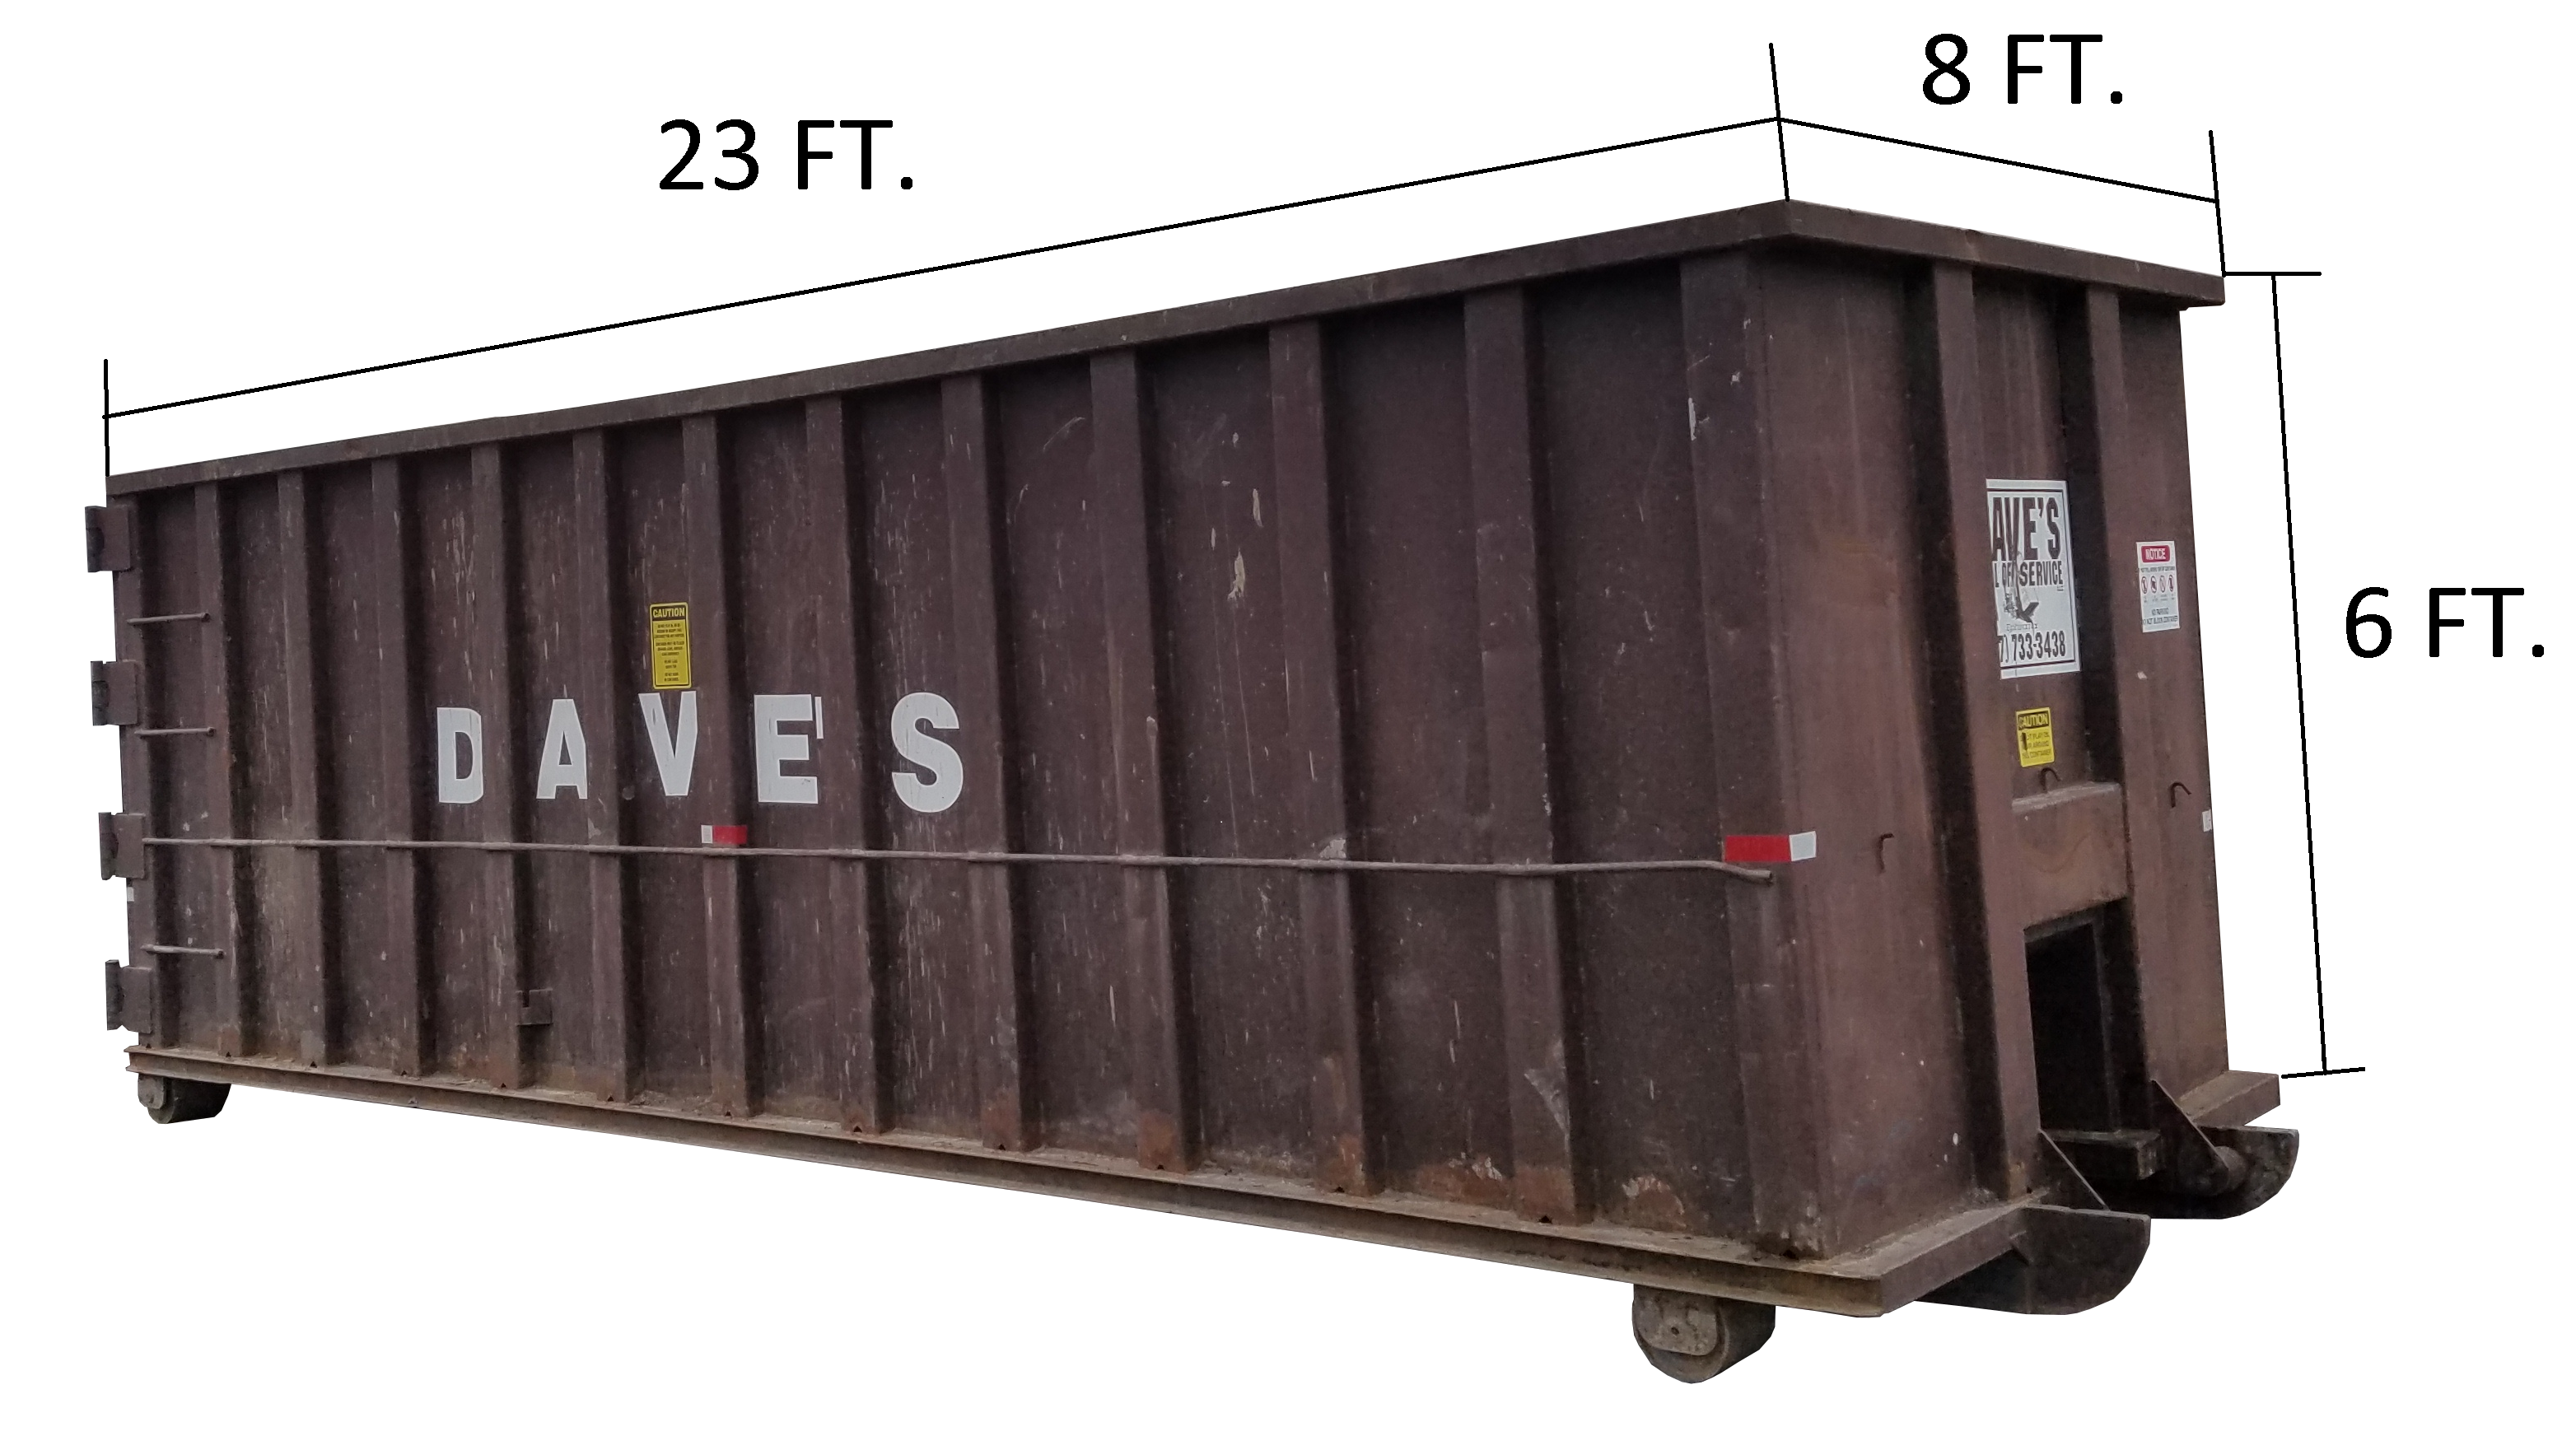 This is how our 40 yd. dumpster looks.